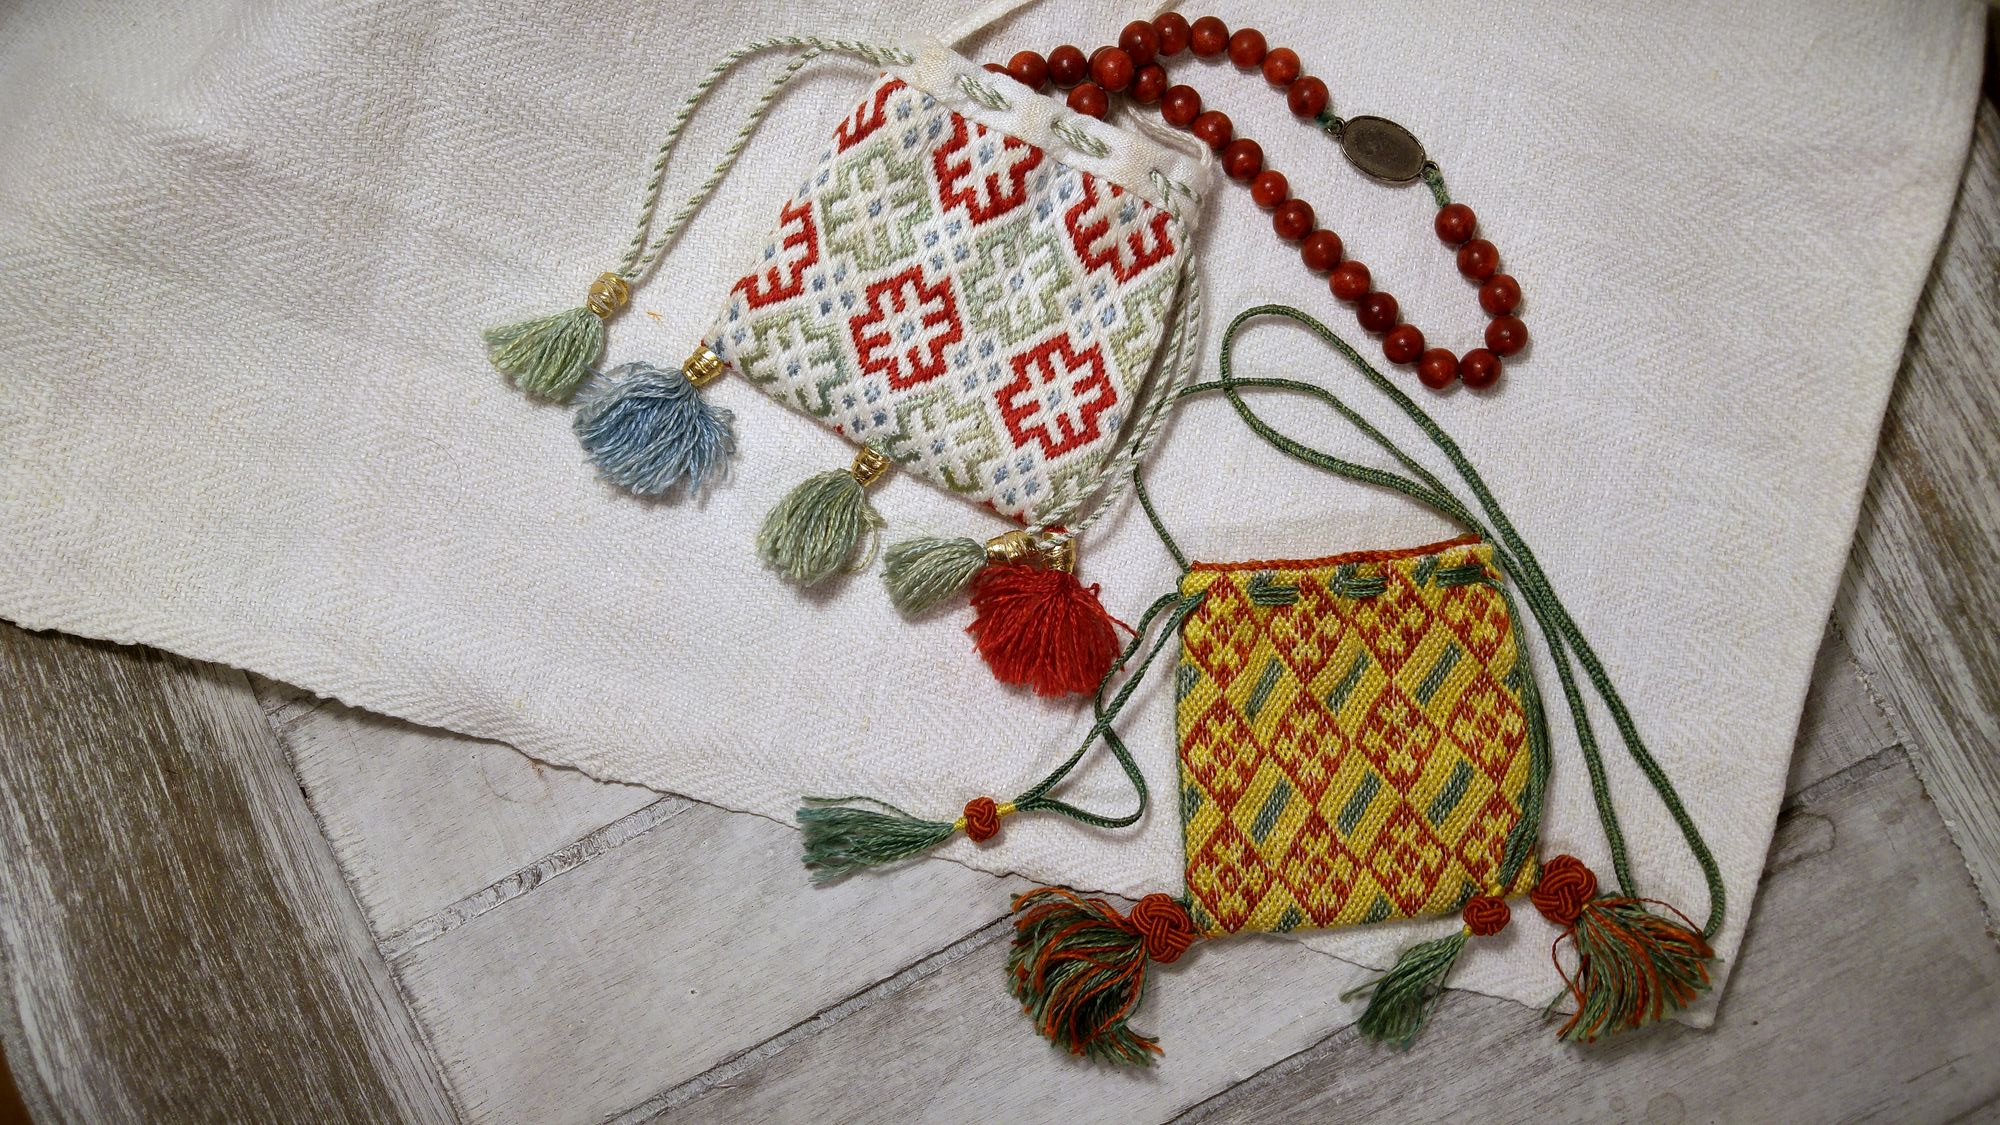 alms purse, alms pouch, almosenbeutel, reliquienbeutel, reliquary pouch, reliquary purse, replica, Replik, Ziegelstich, brick stitch, medieval, embroidery, living history, historische,  embroidered,  Mittelalter, mittelalterliche, historische, Stickerei, Sticktechnik, middle ages, muster, pattern, counted embroidery, zählstickerei